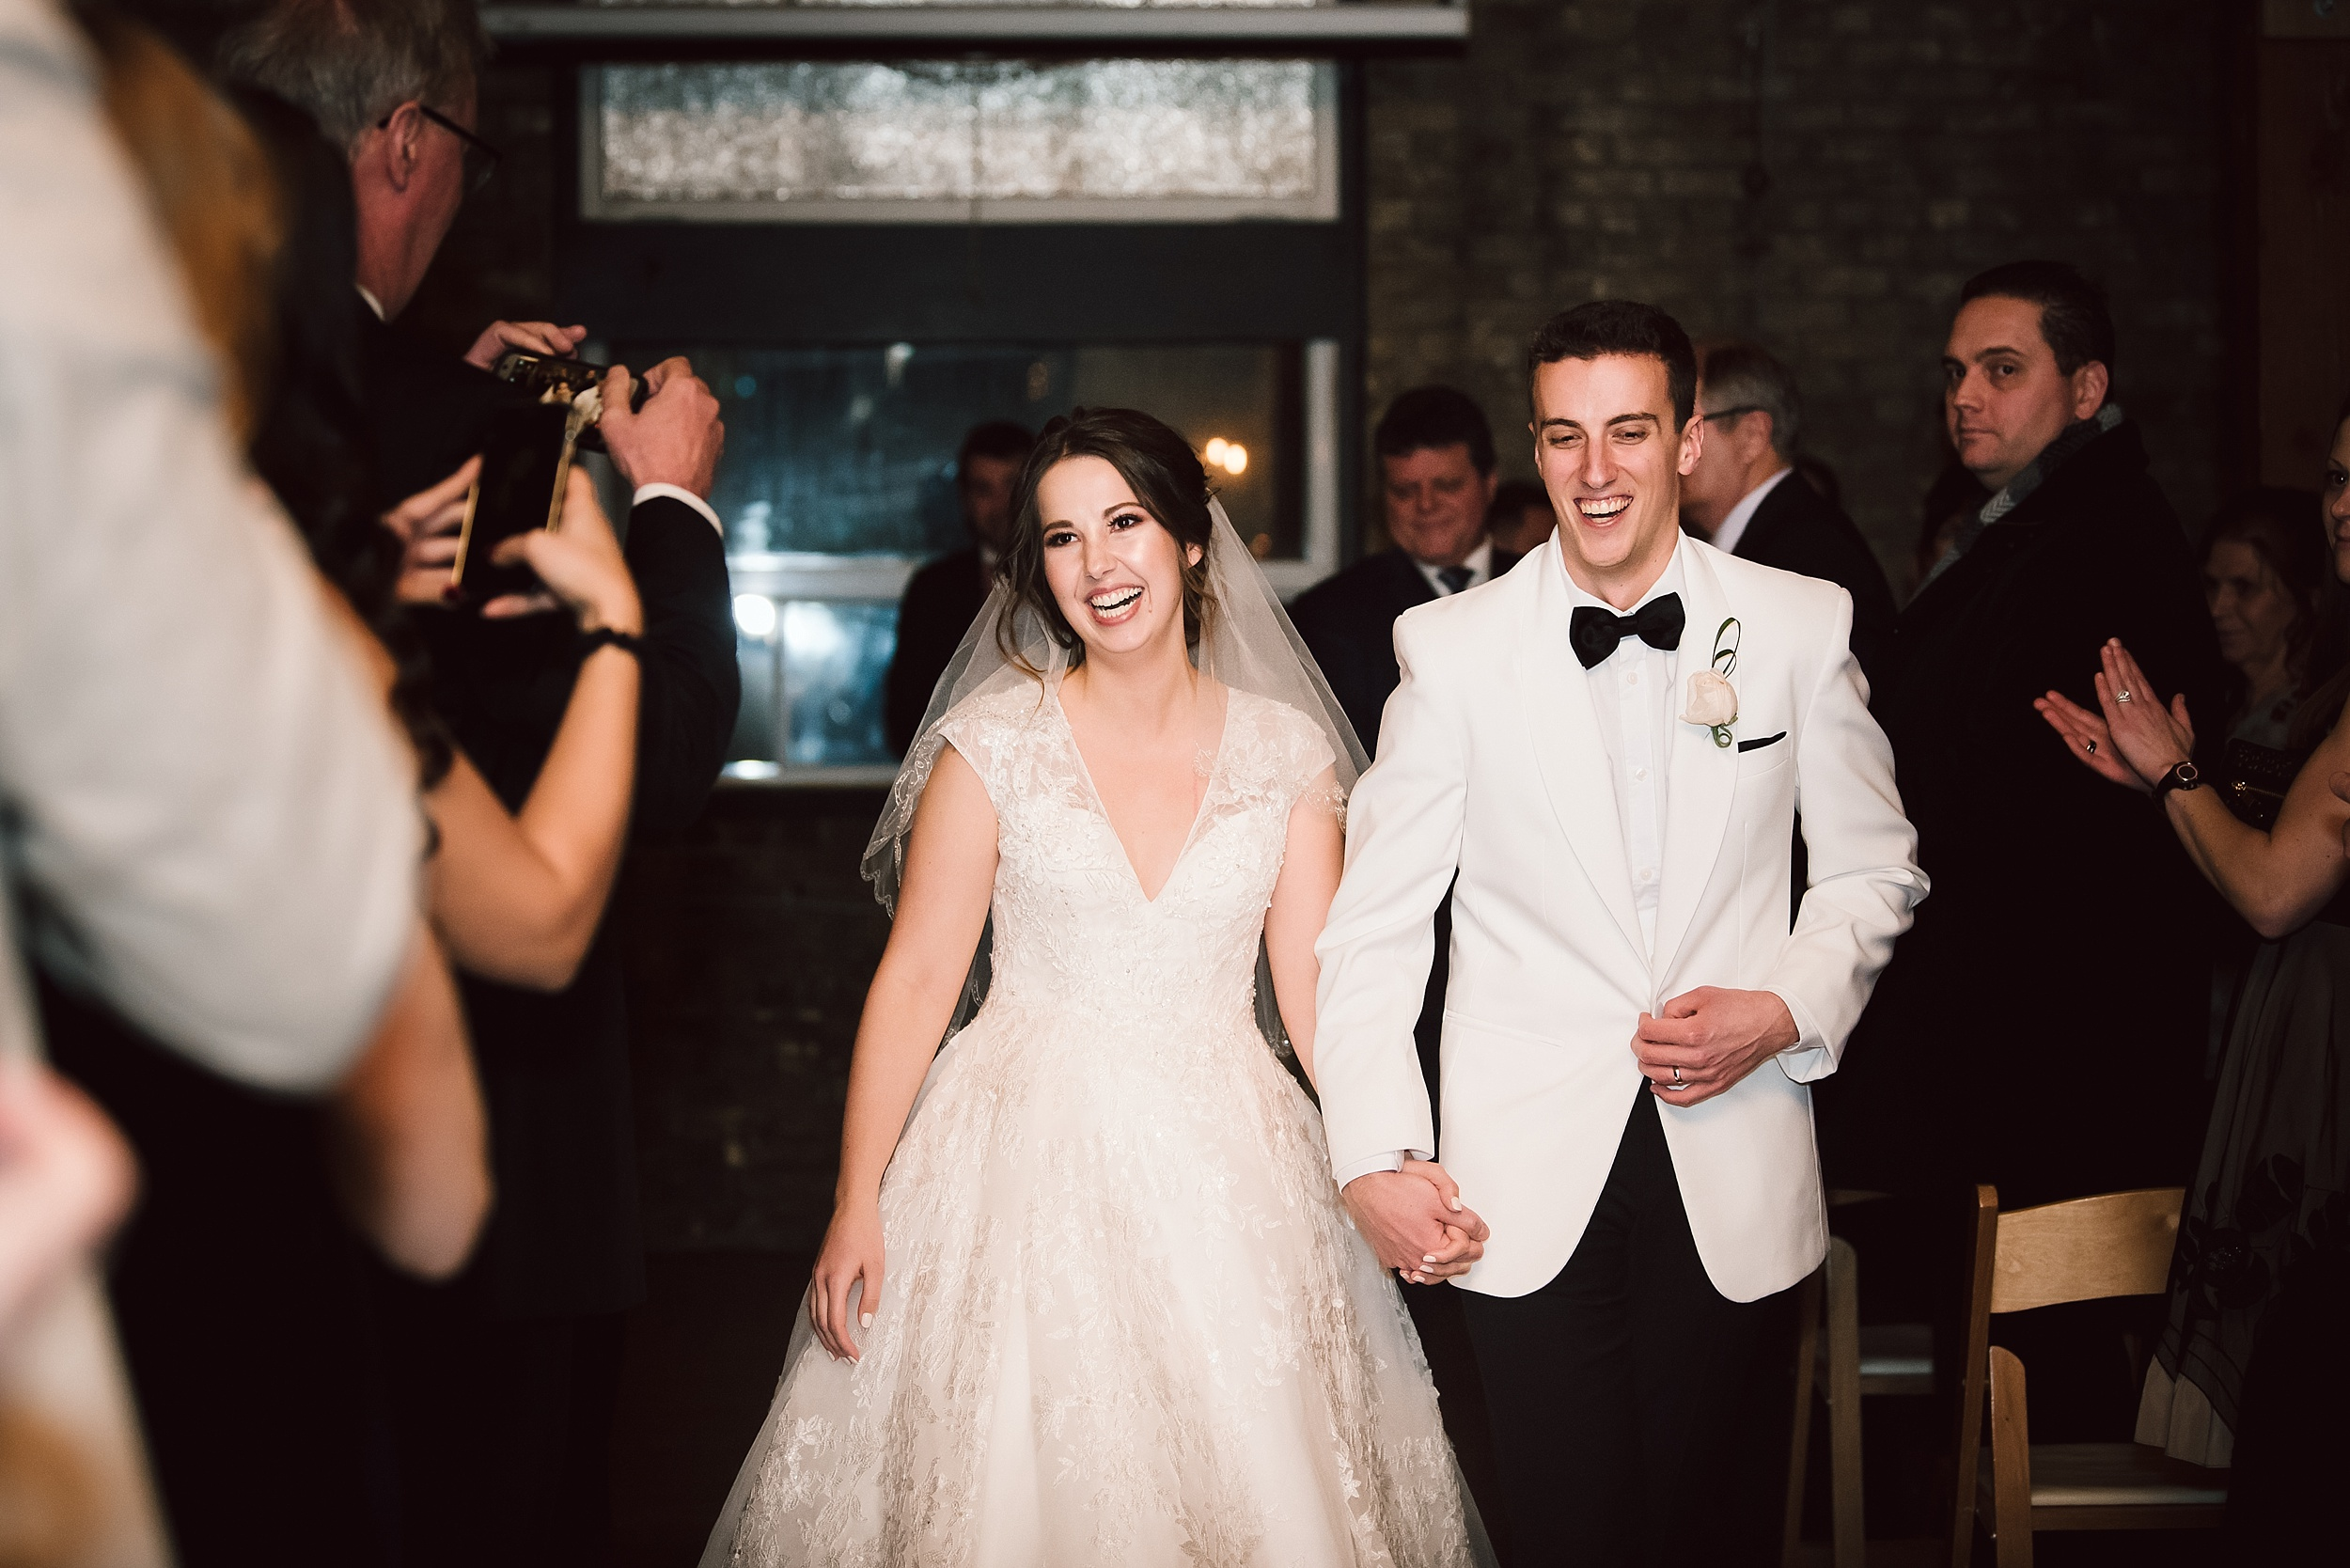 Jam_Factory_Wedding_Toronto_Winter_Wedding_Photographer_0060.jpg